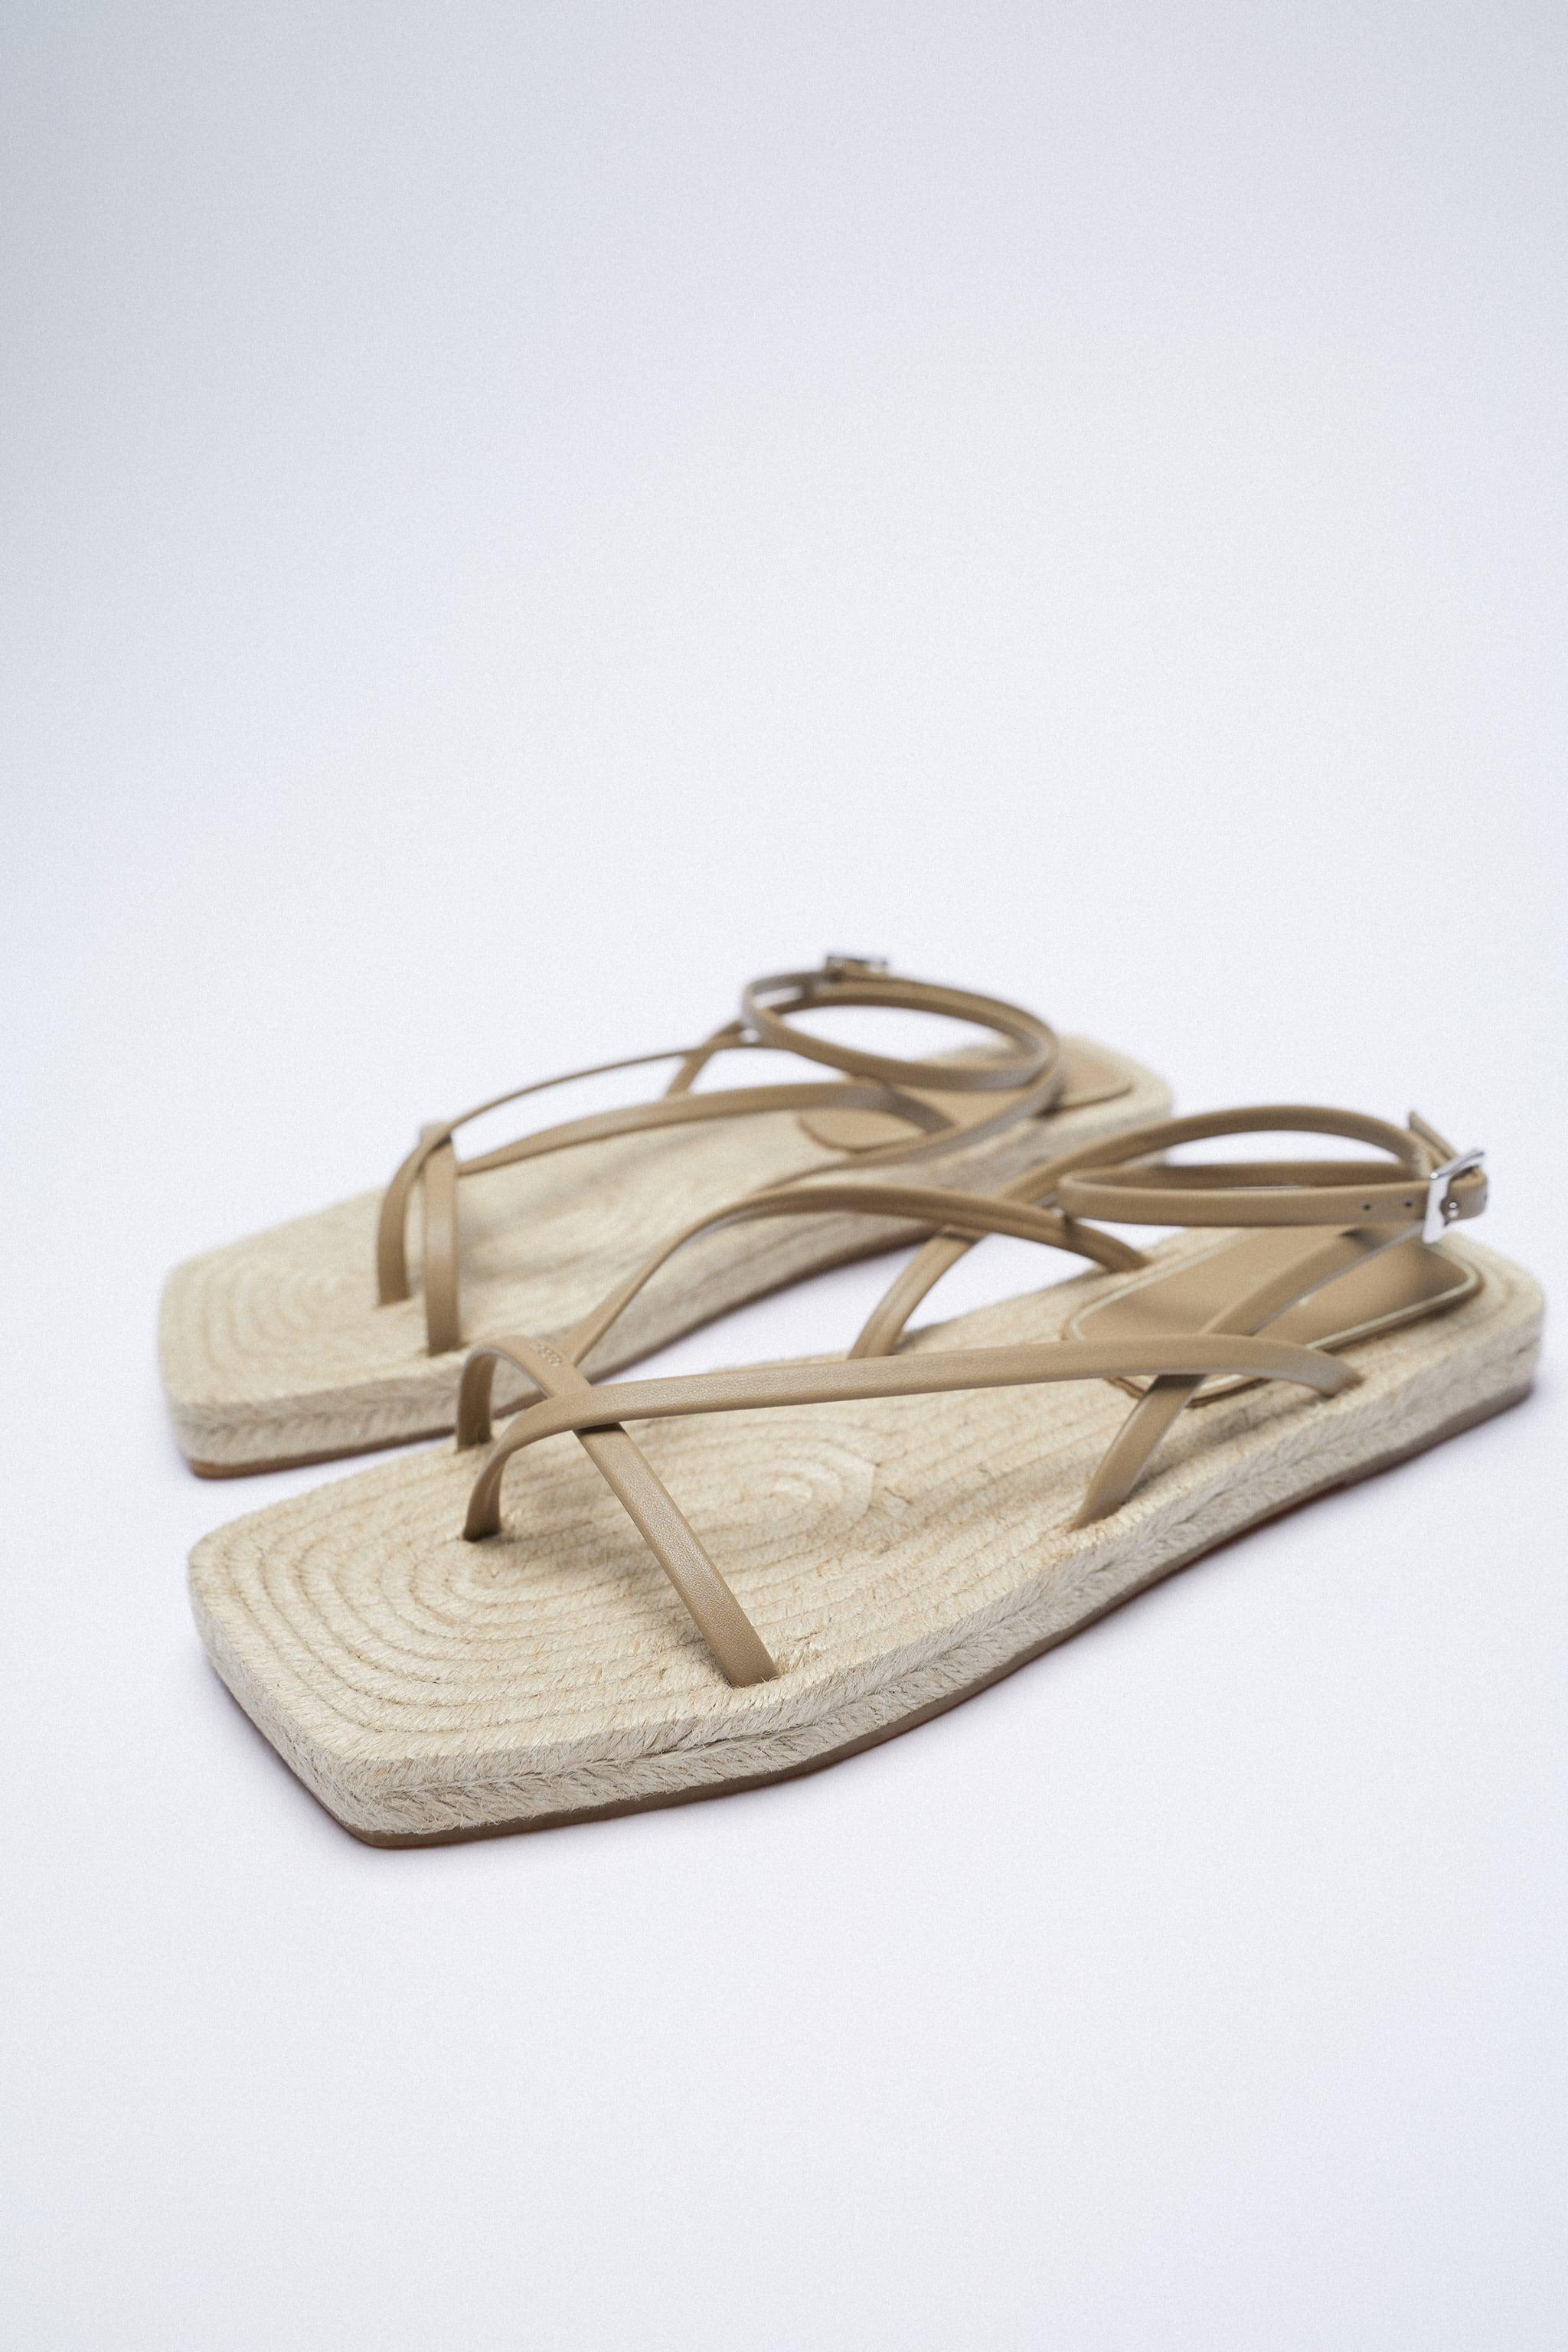 CHUNKY STRAPPY JUTE SANDALS 5